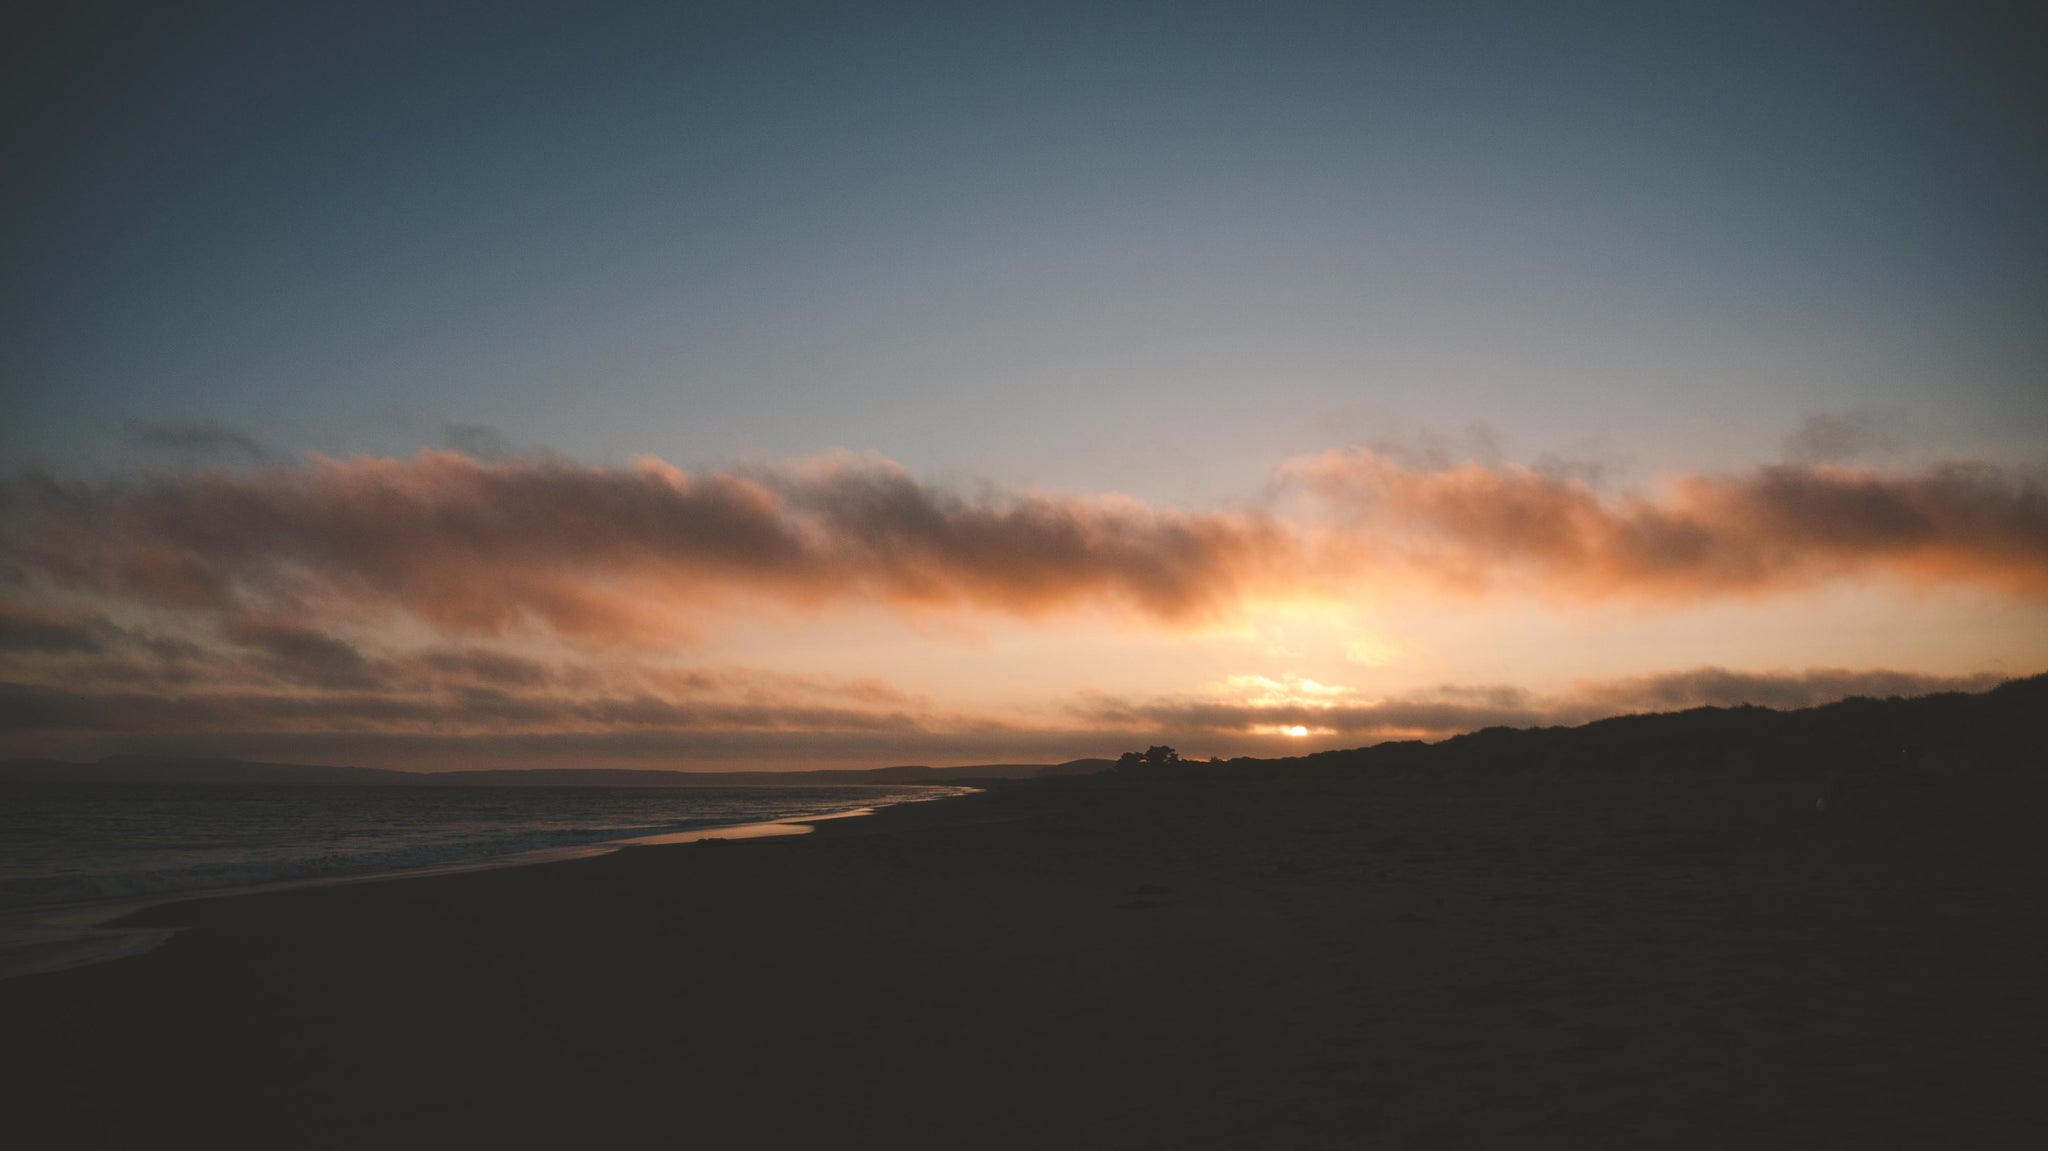 pointreyes-sunset-california-thennowalways